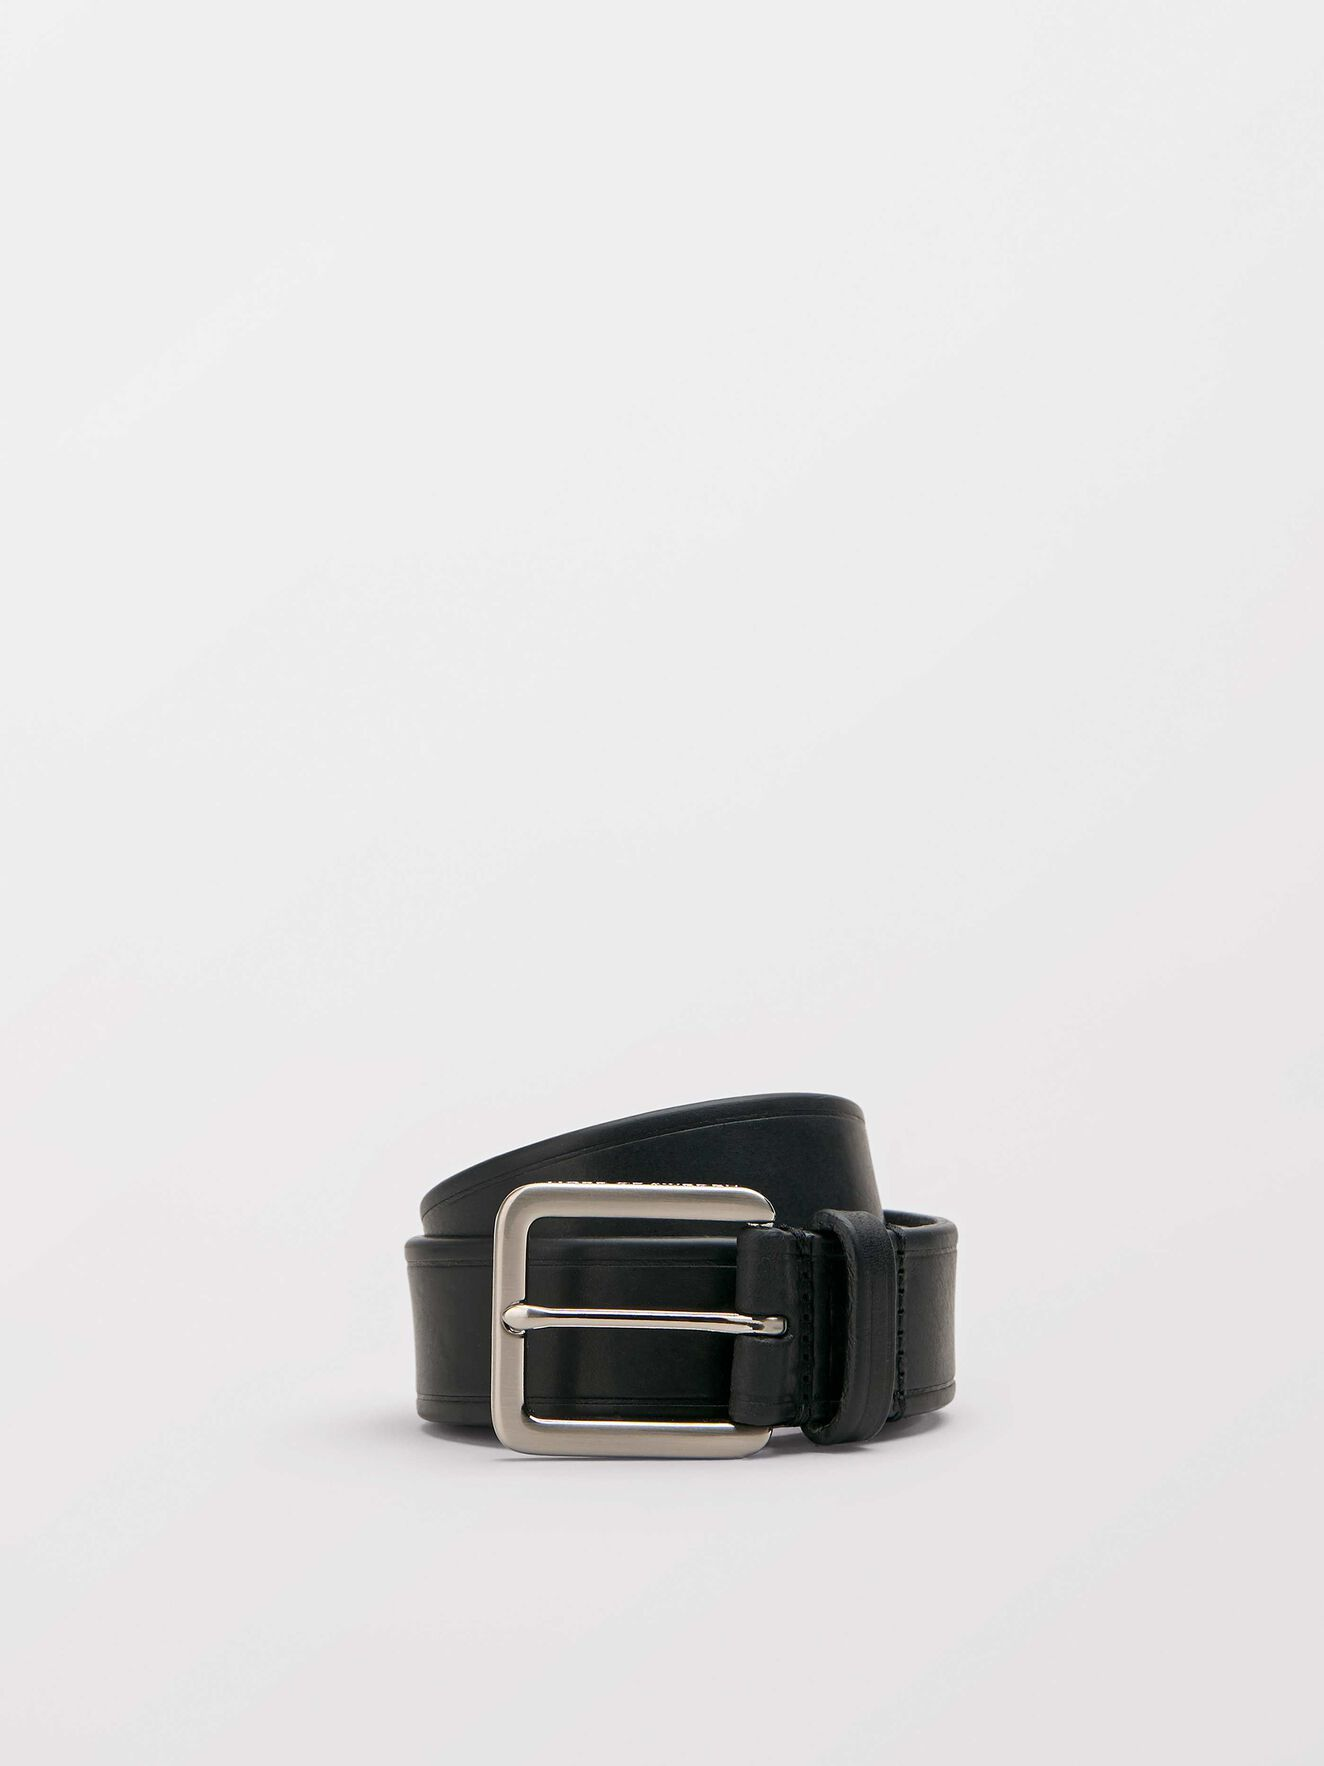 Biese belt in Black from Tiger of Sweden